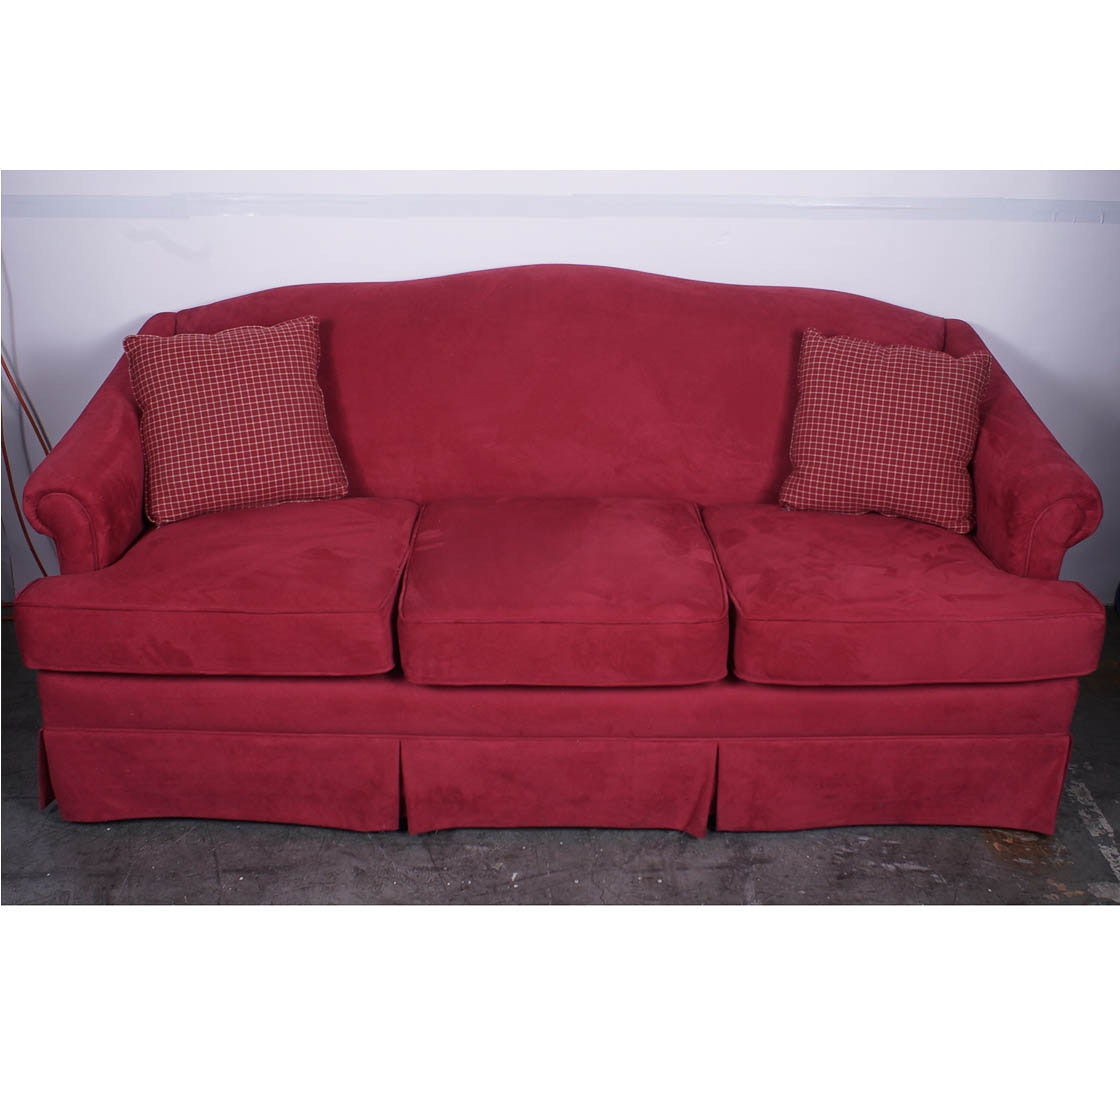 Upholstered Sofa by Sofa Express